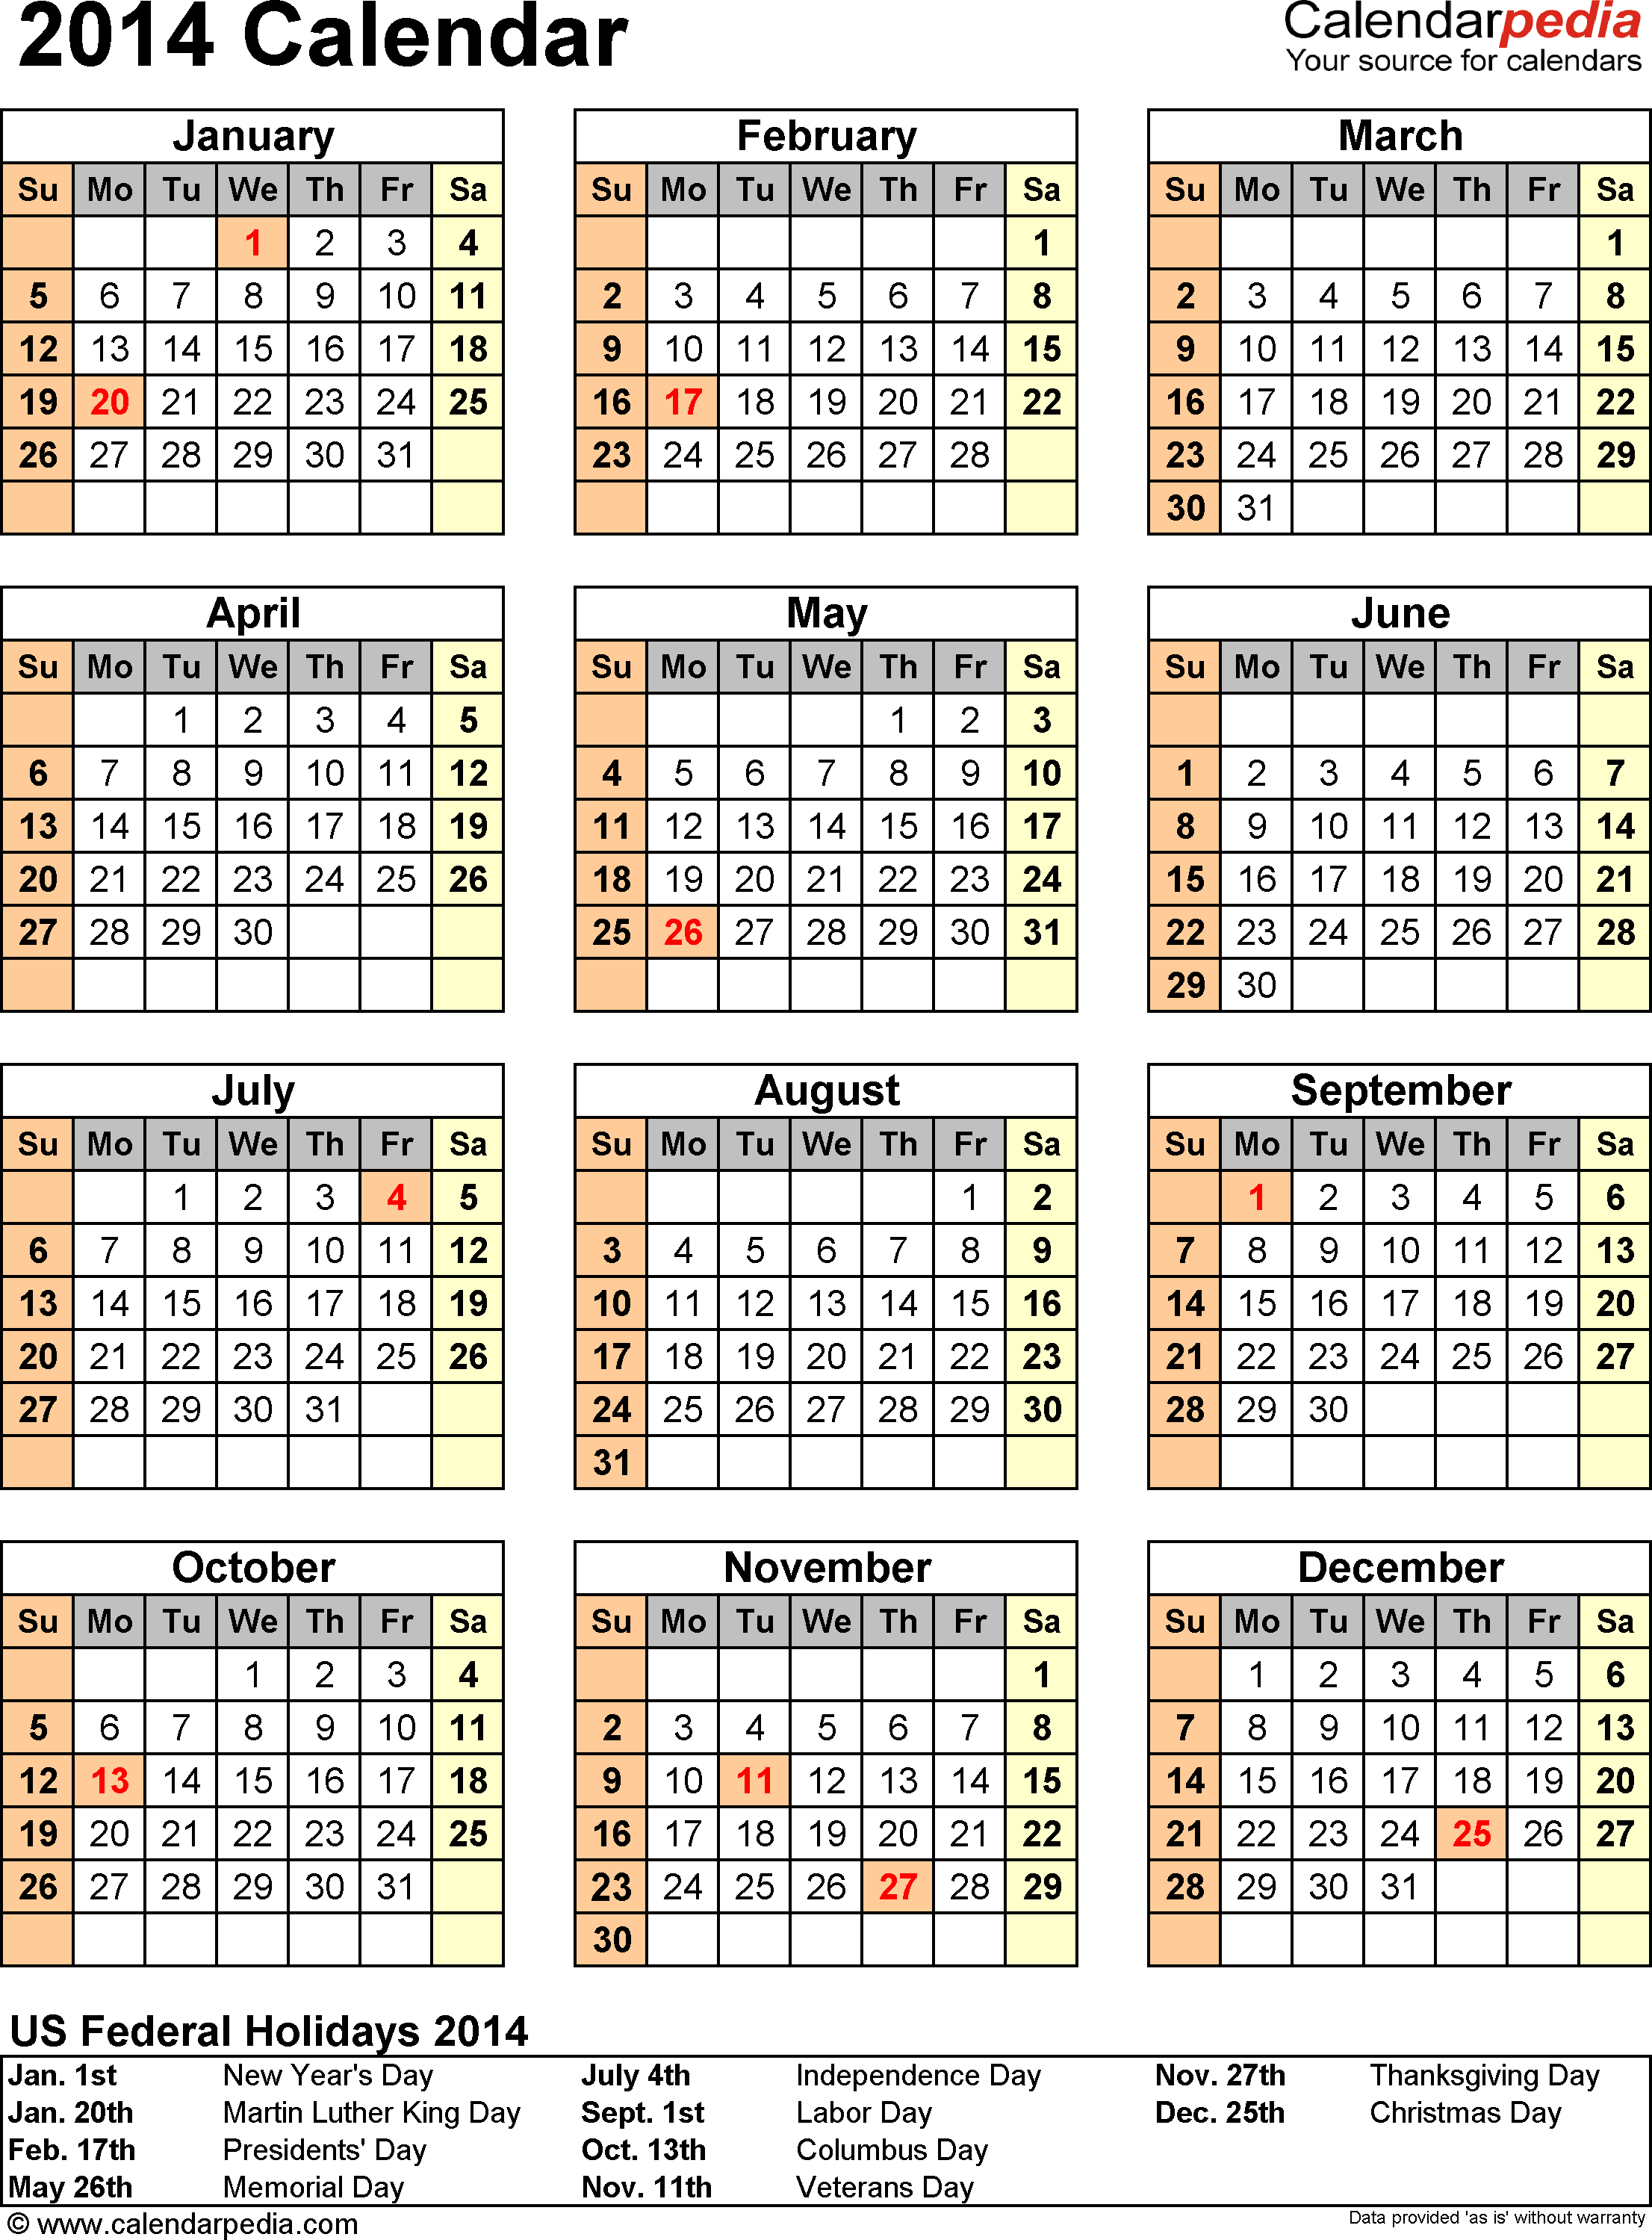 Download PDF template for 2014 calendar template 11: portrait orientation, 1 page, with US federal holidays 2014, with US federal holidays 2014, paper format: US letter